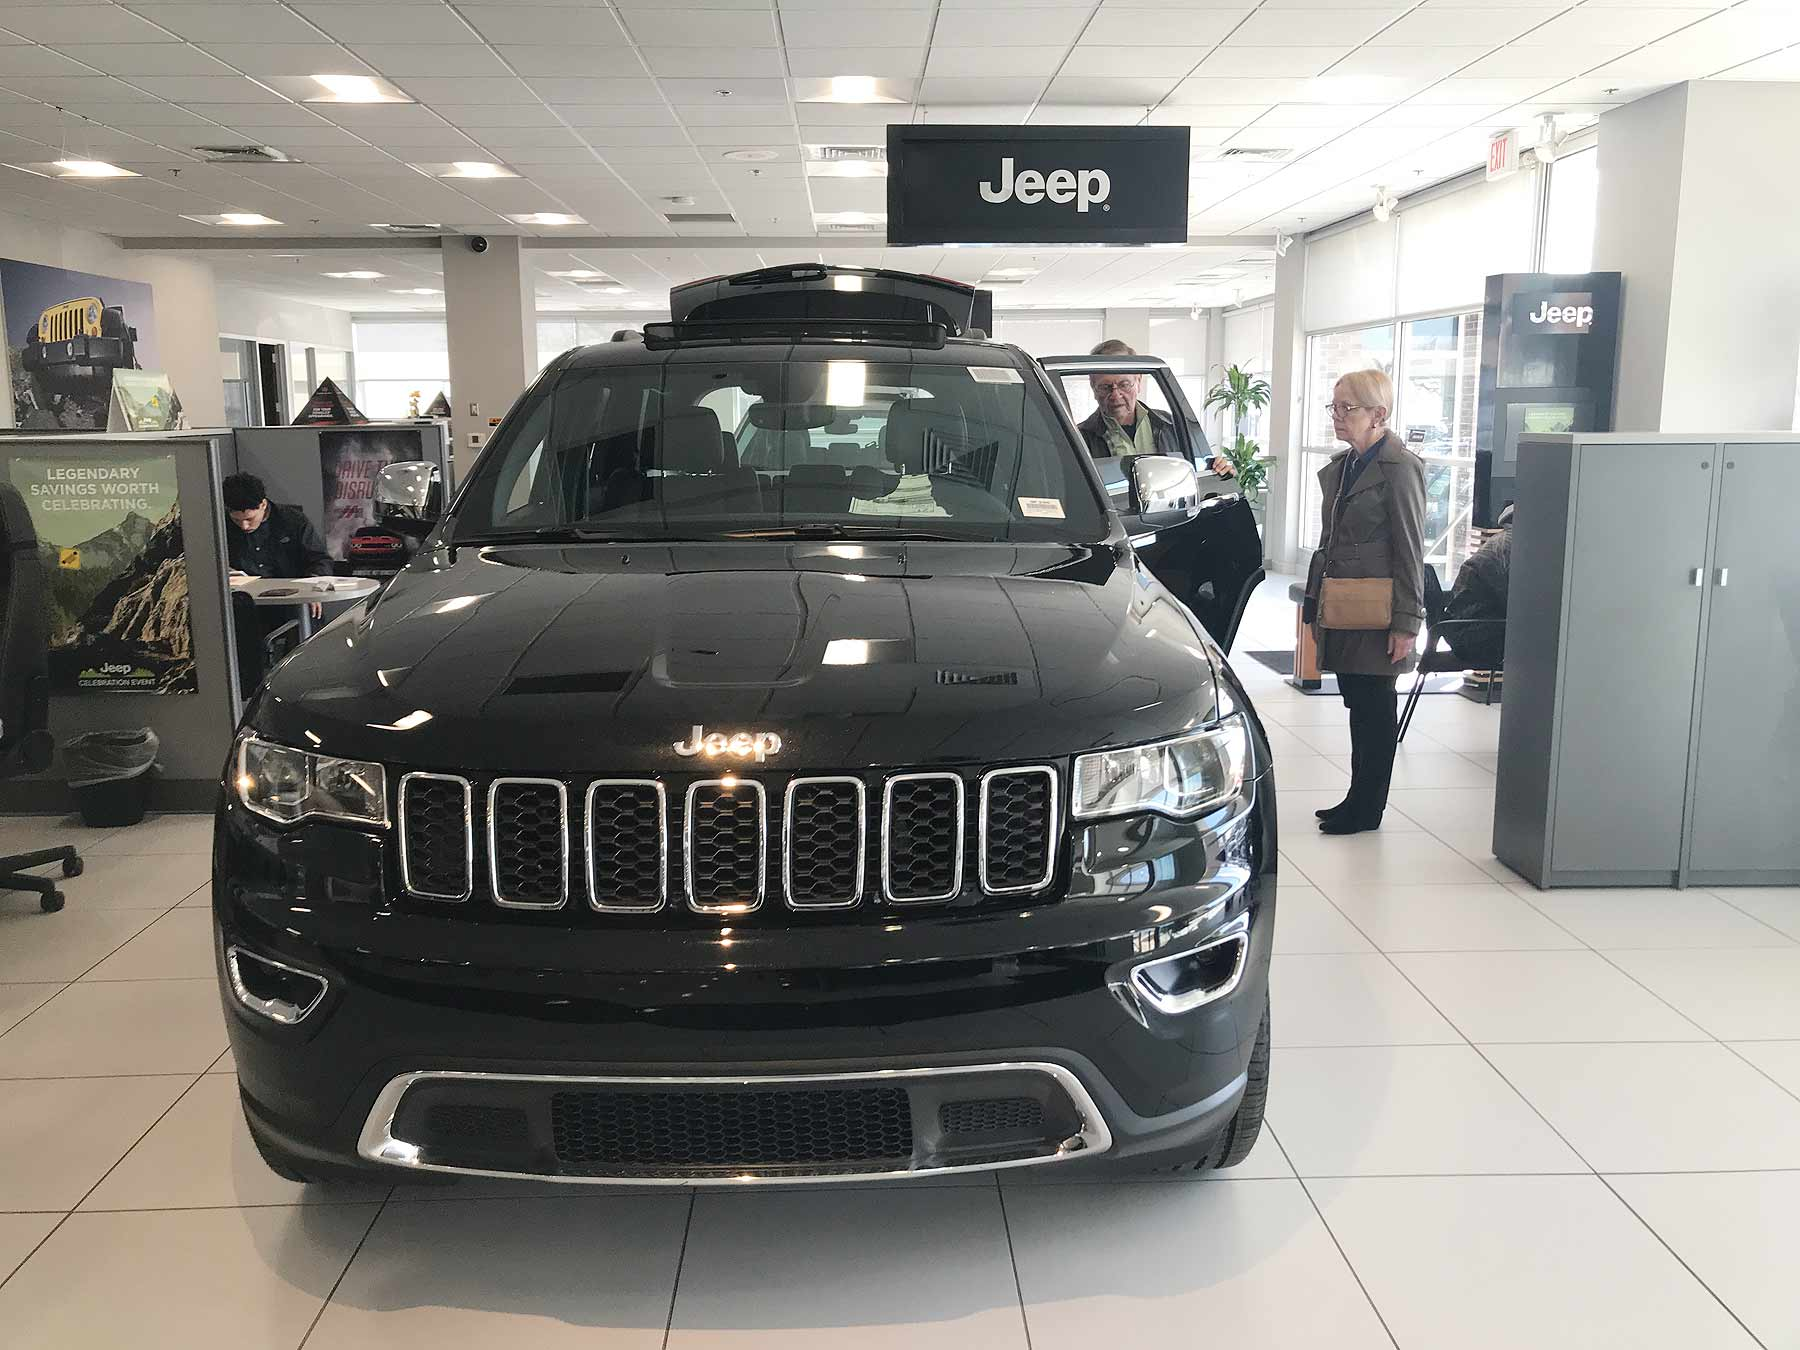 Detroit U S For Fiat Chrysler Automobiles Dipped 7 Percent In March Behind A Slower Month Jeep